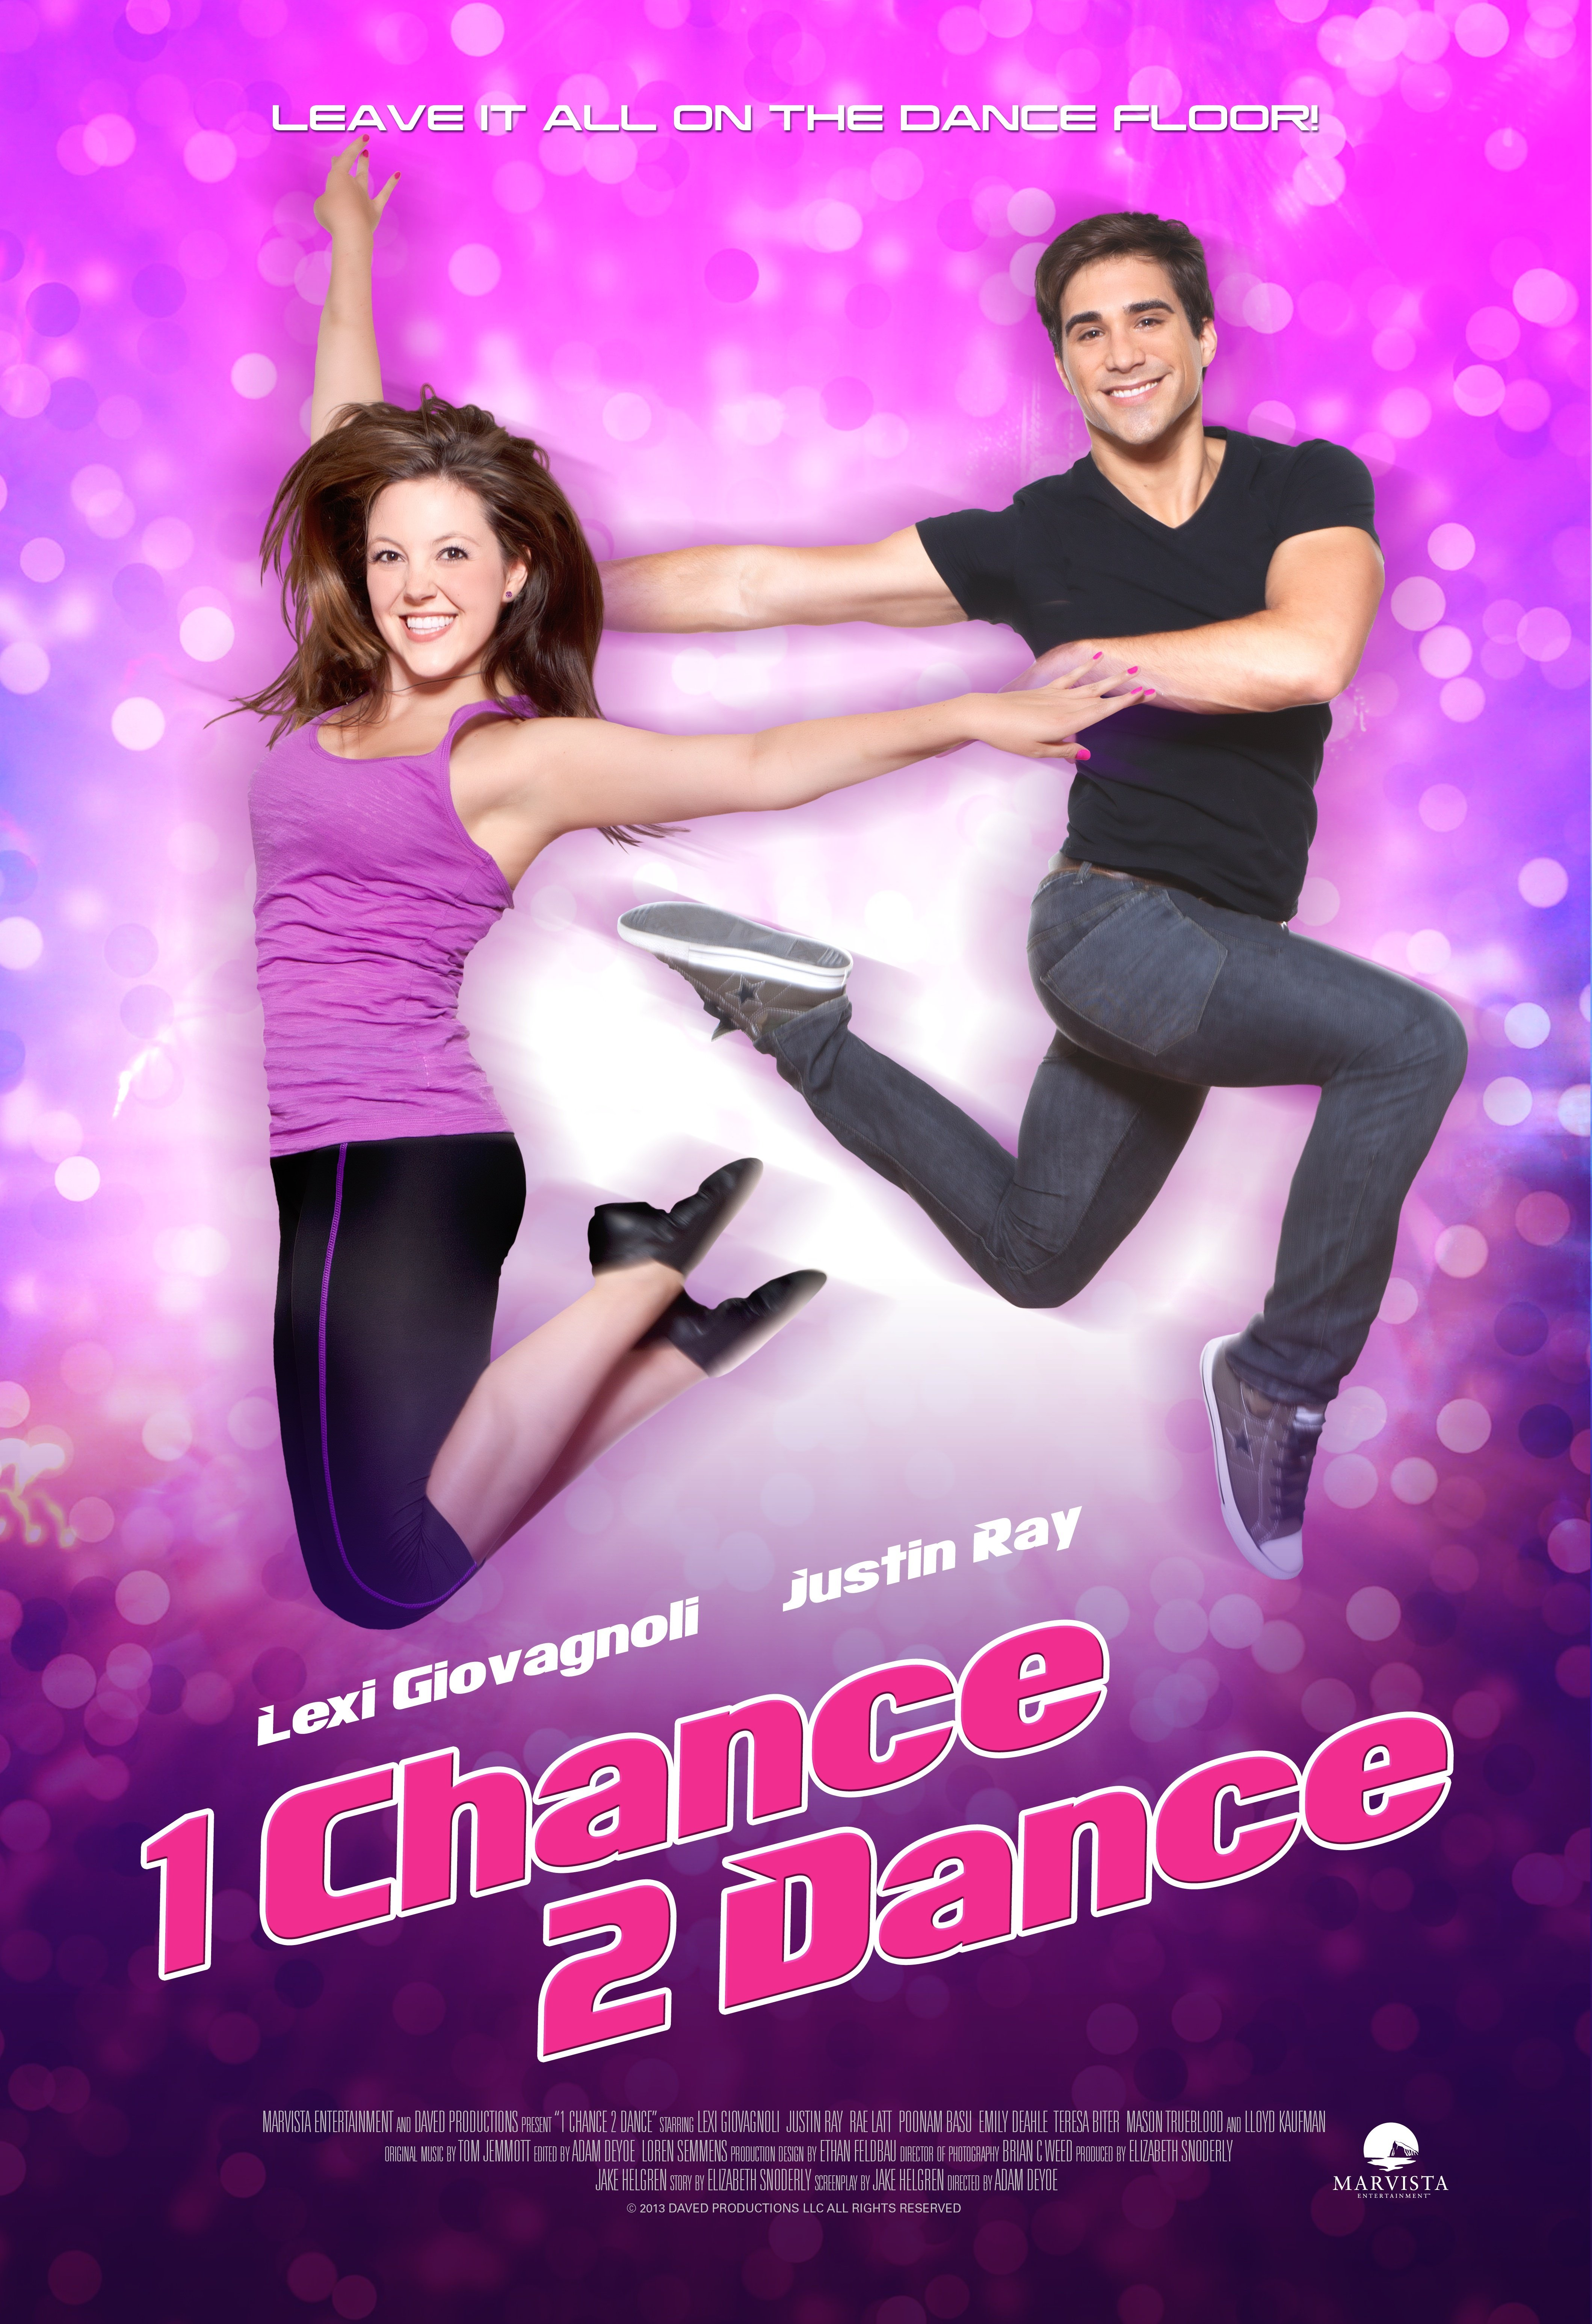 Image 1 Chance 2 Dance Watch Full Movie Free Online